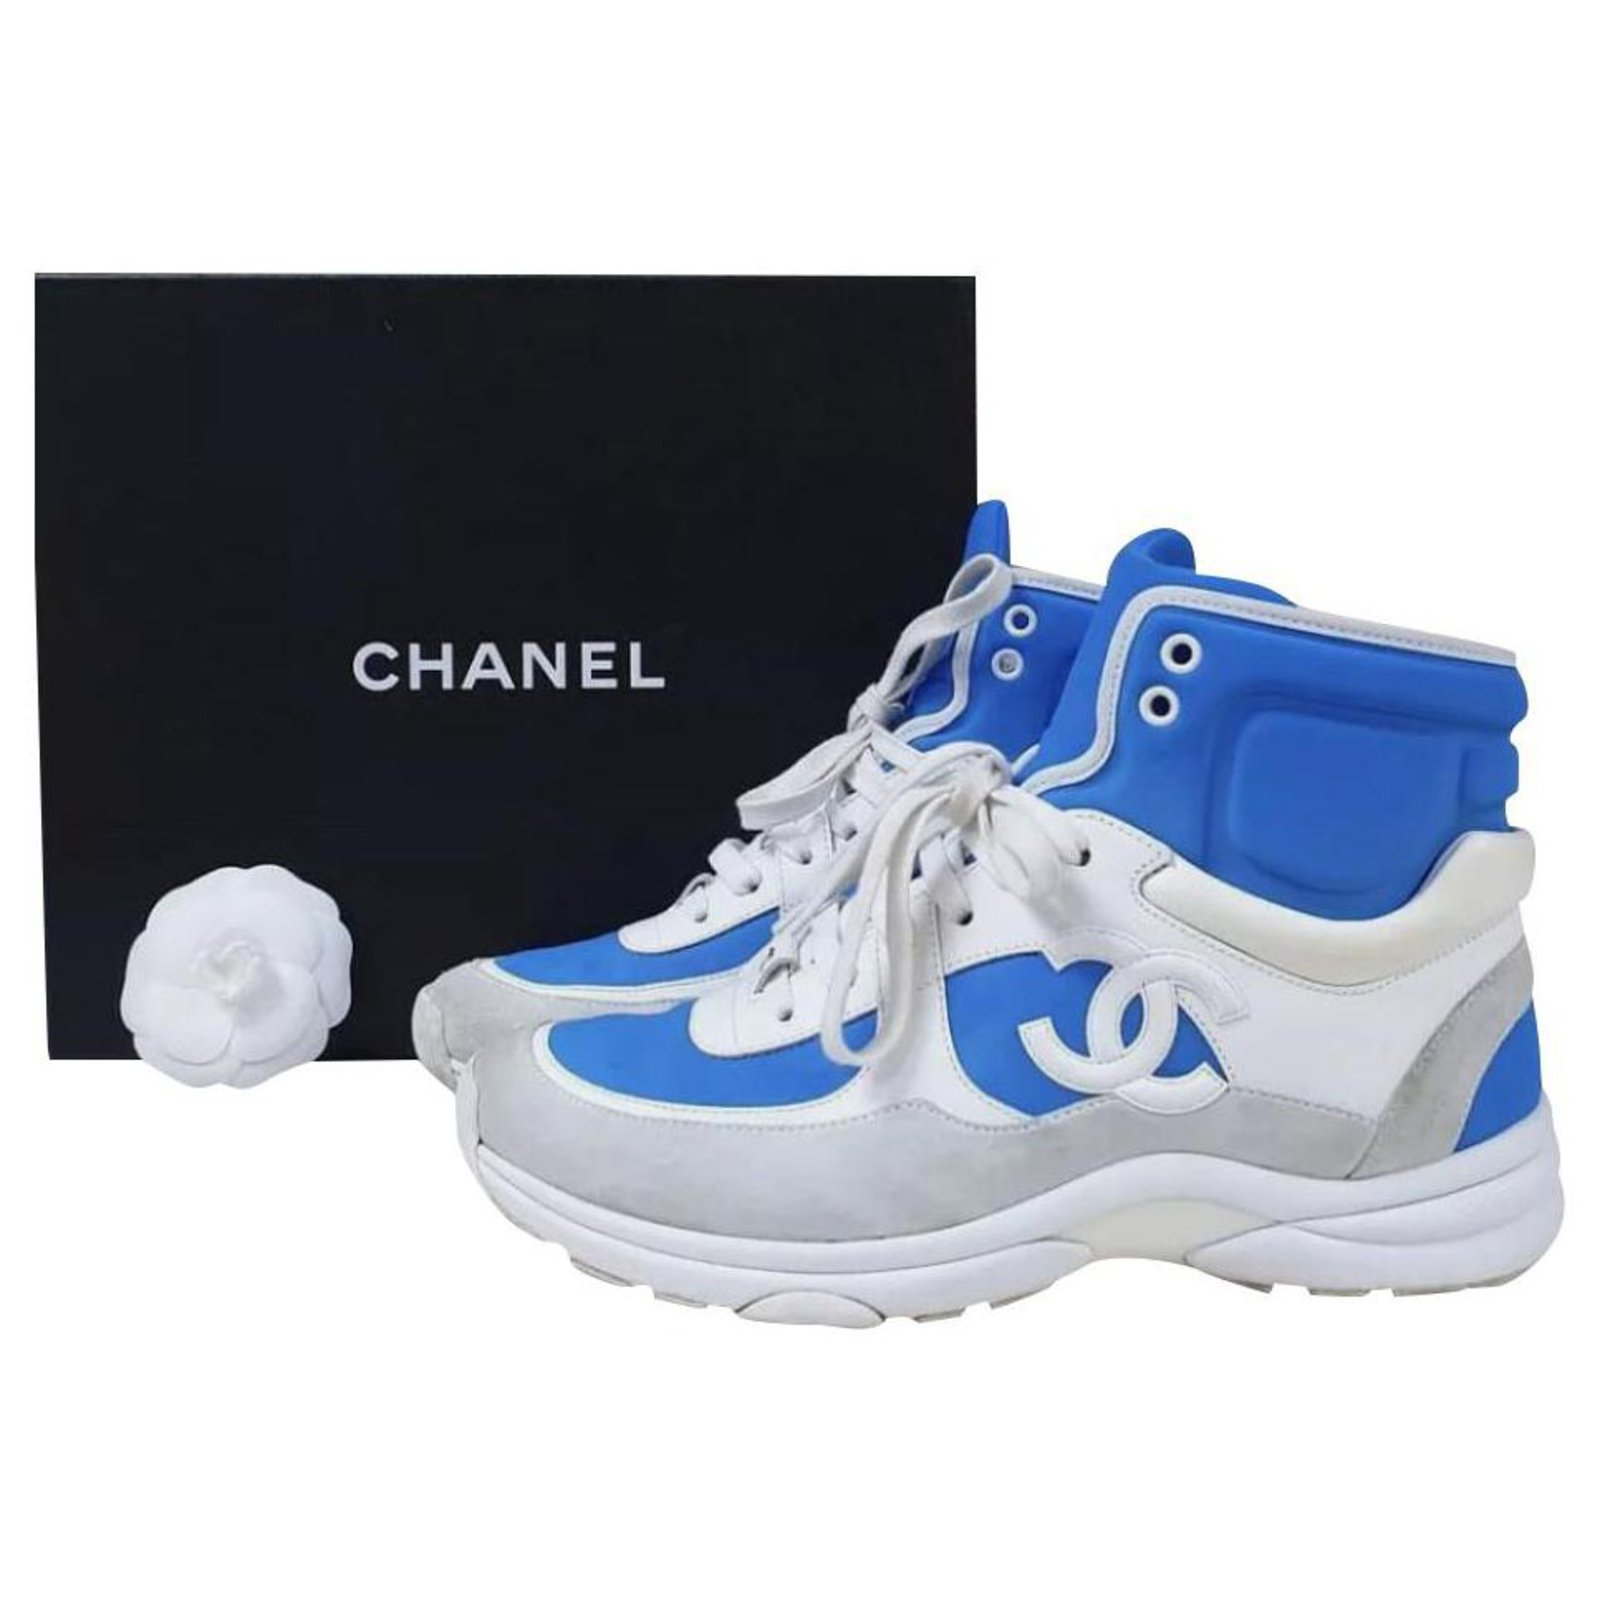 Chanel Chanel White Leather Gray Suede